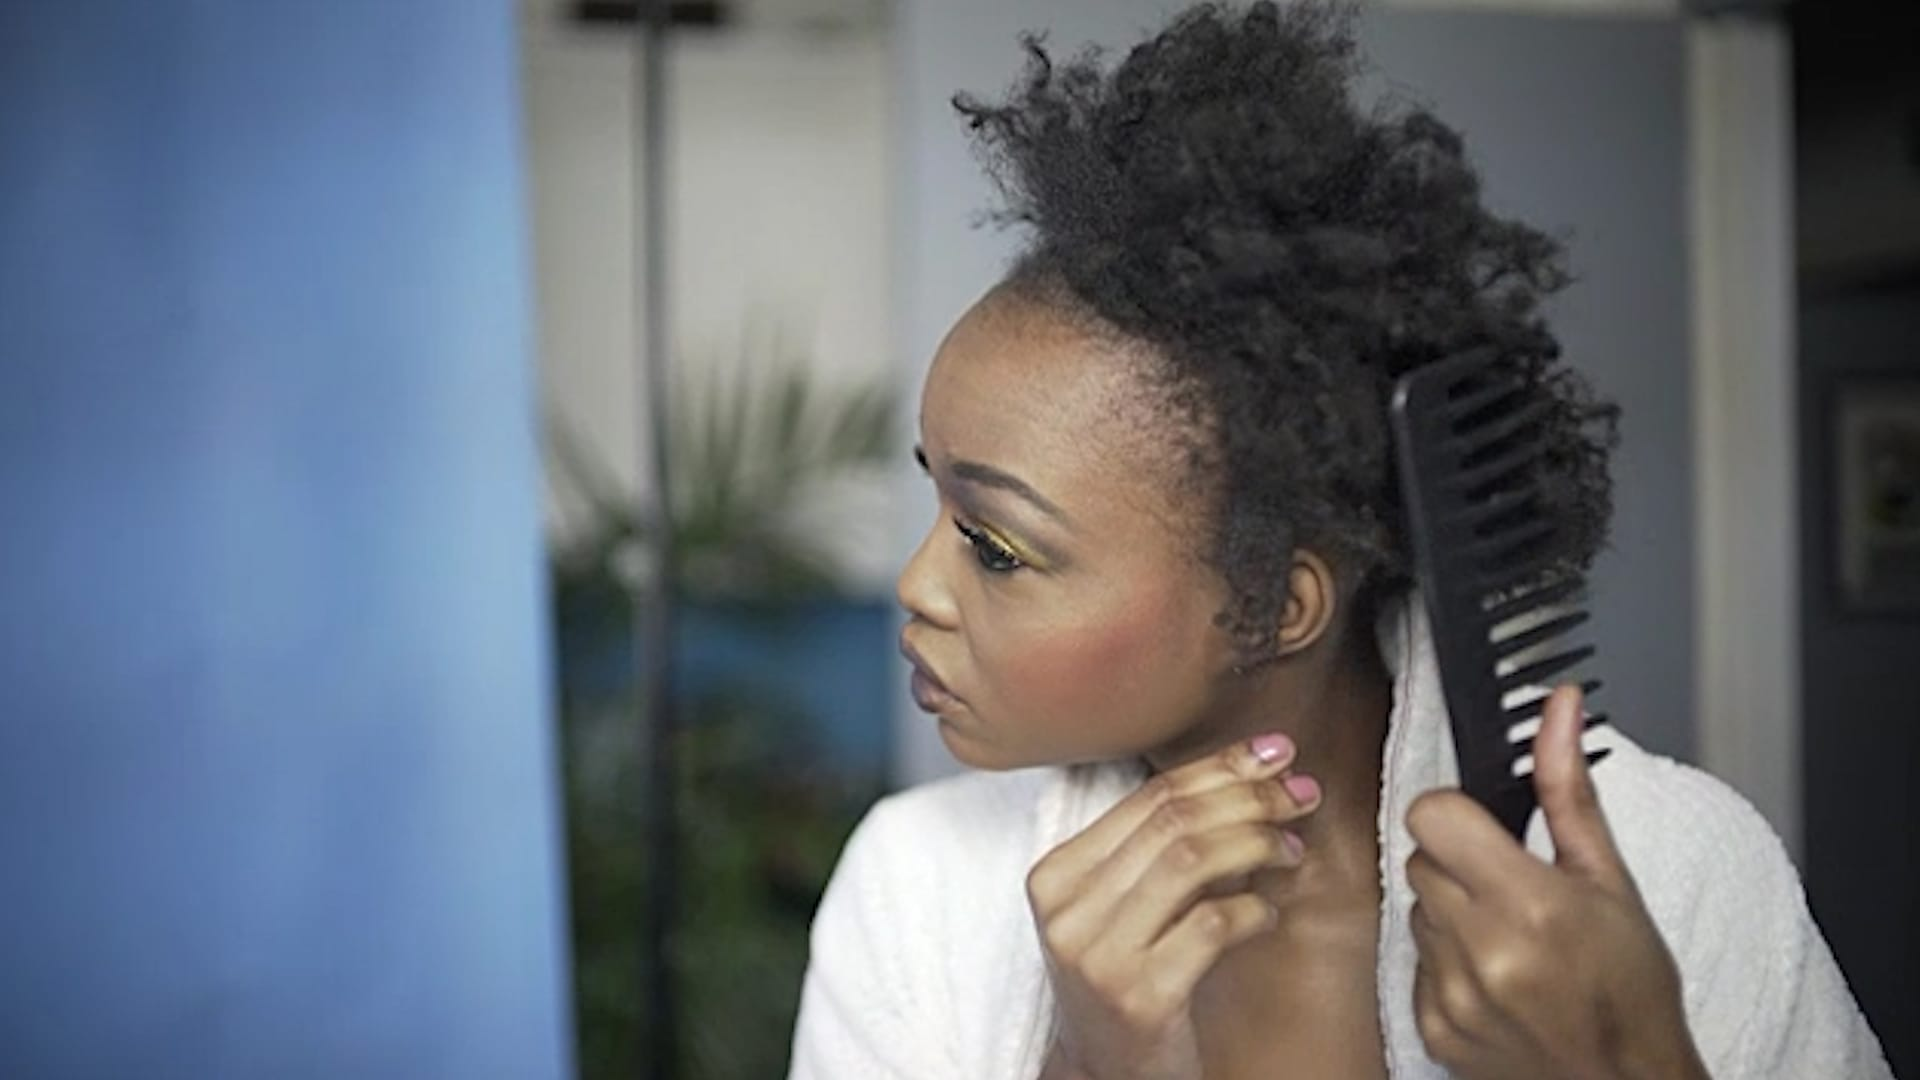 The Us Is Missing Out On Billions From The Black Hair Care Industry